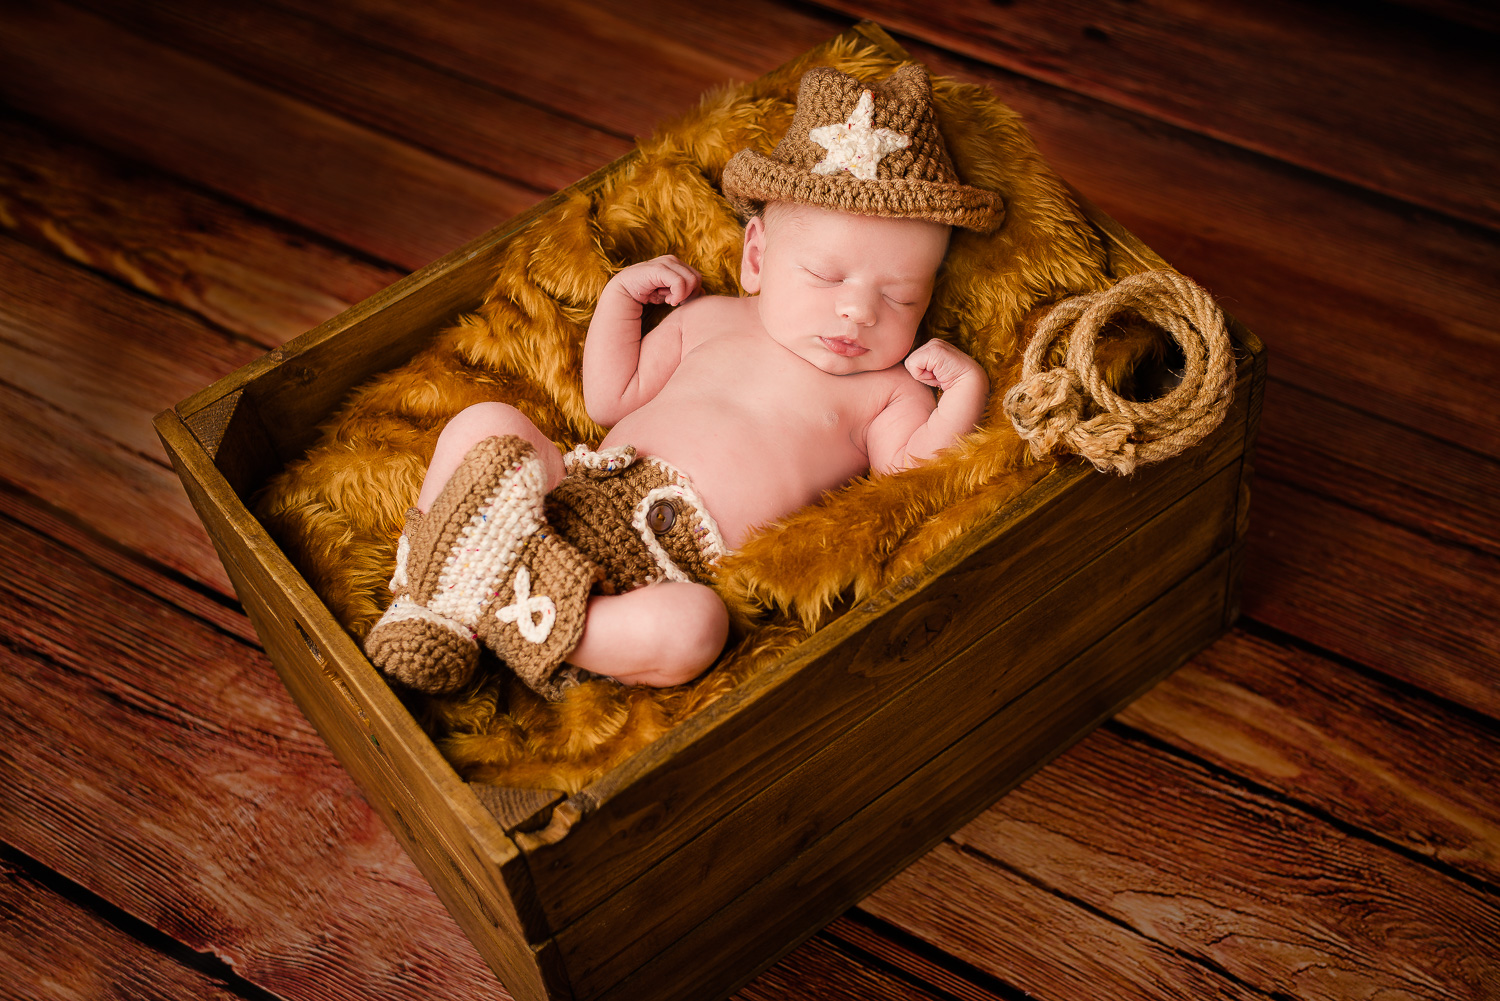 Newborn-Photographer-Glasgow-Ola-Molik-16